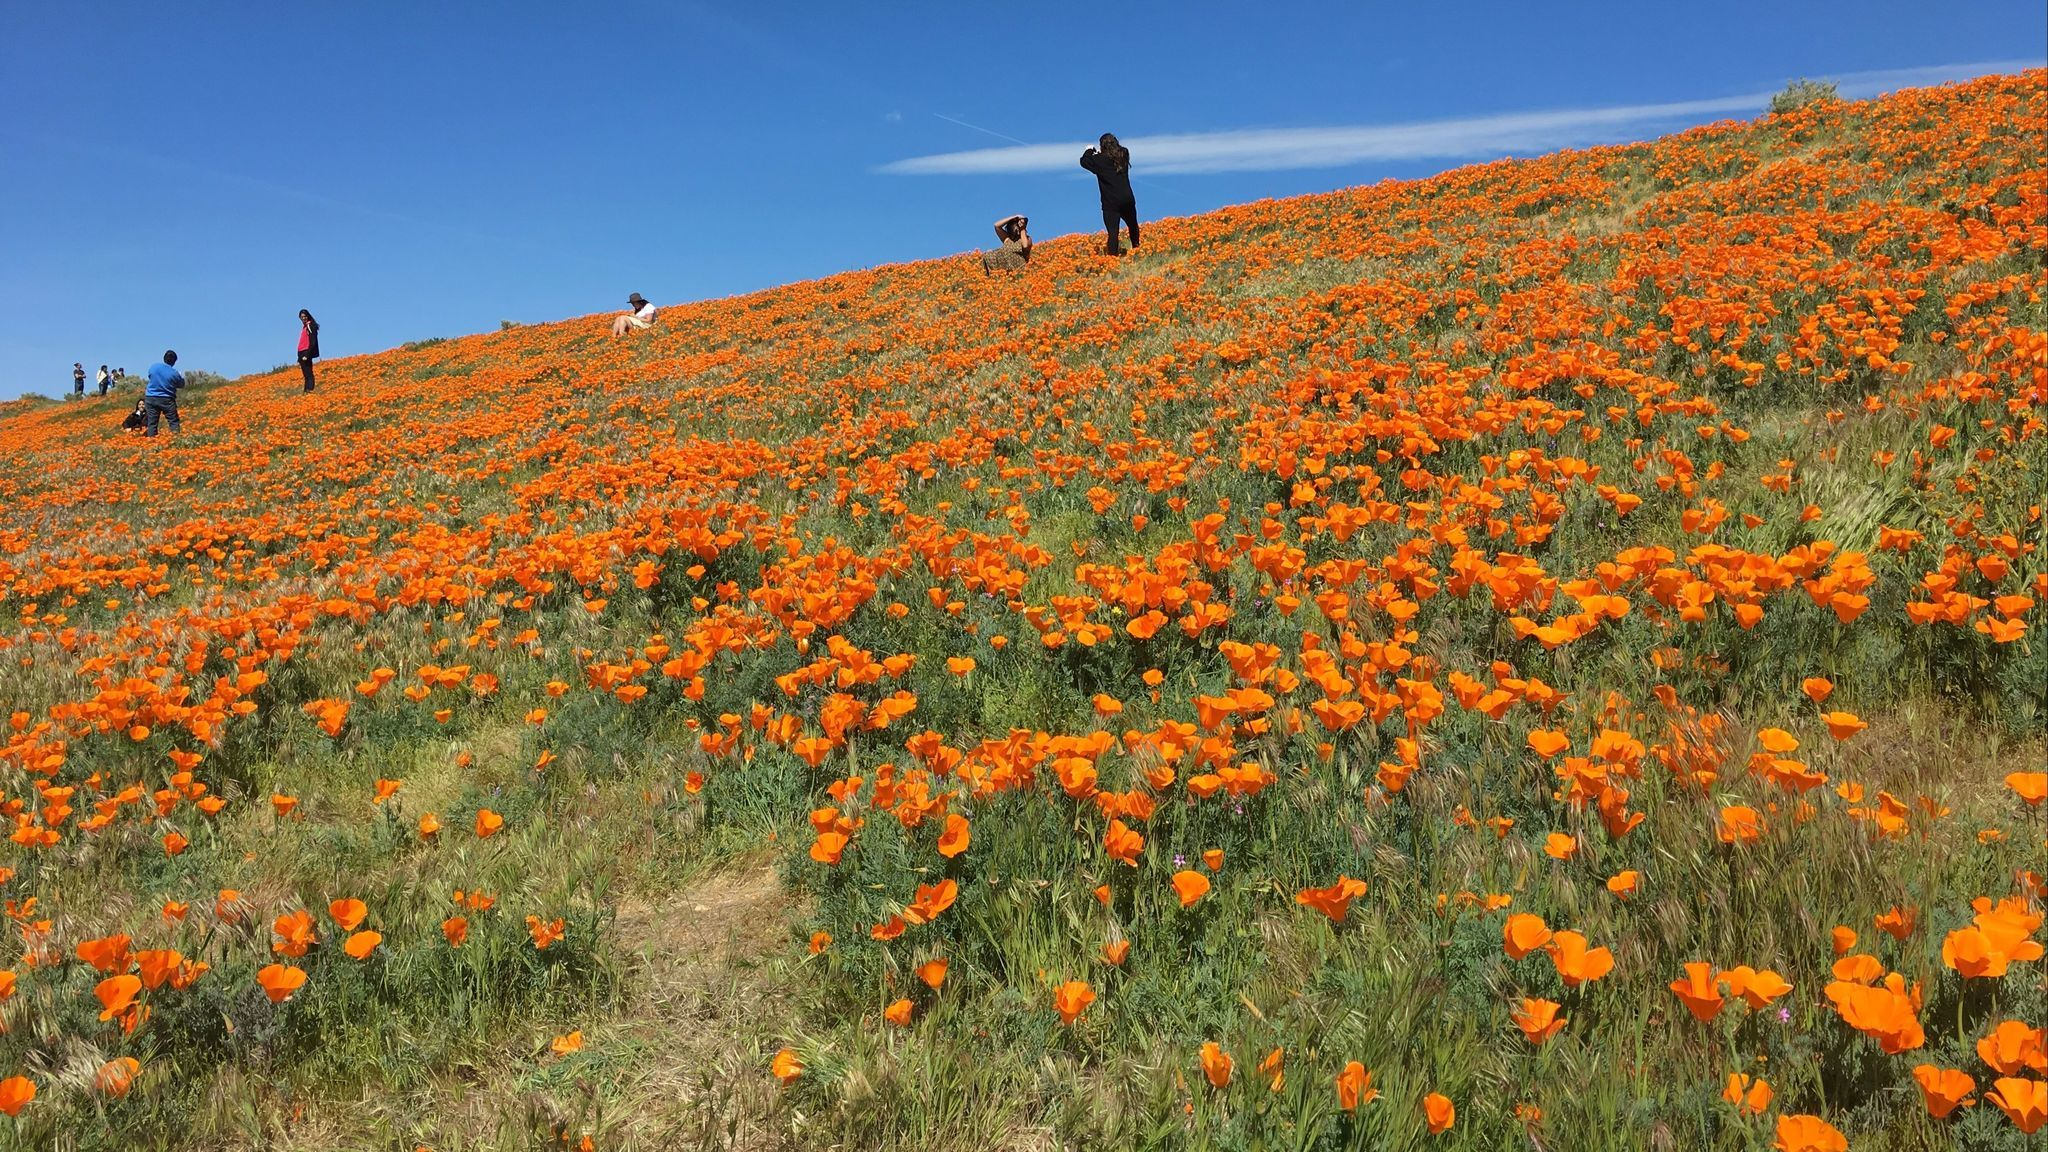 People stop at the site of California poppies in roads around Lancaster.